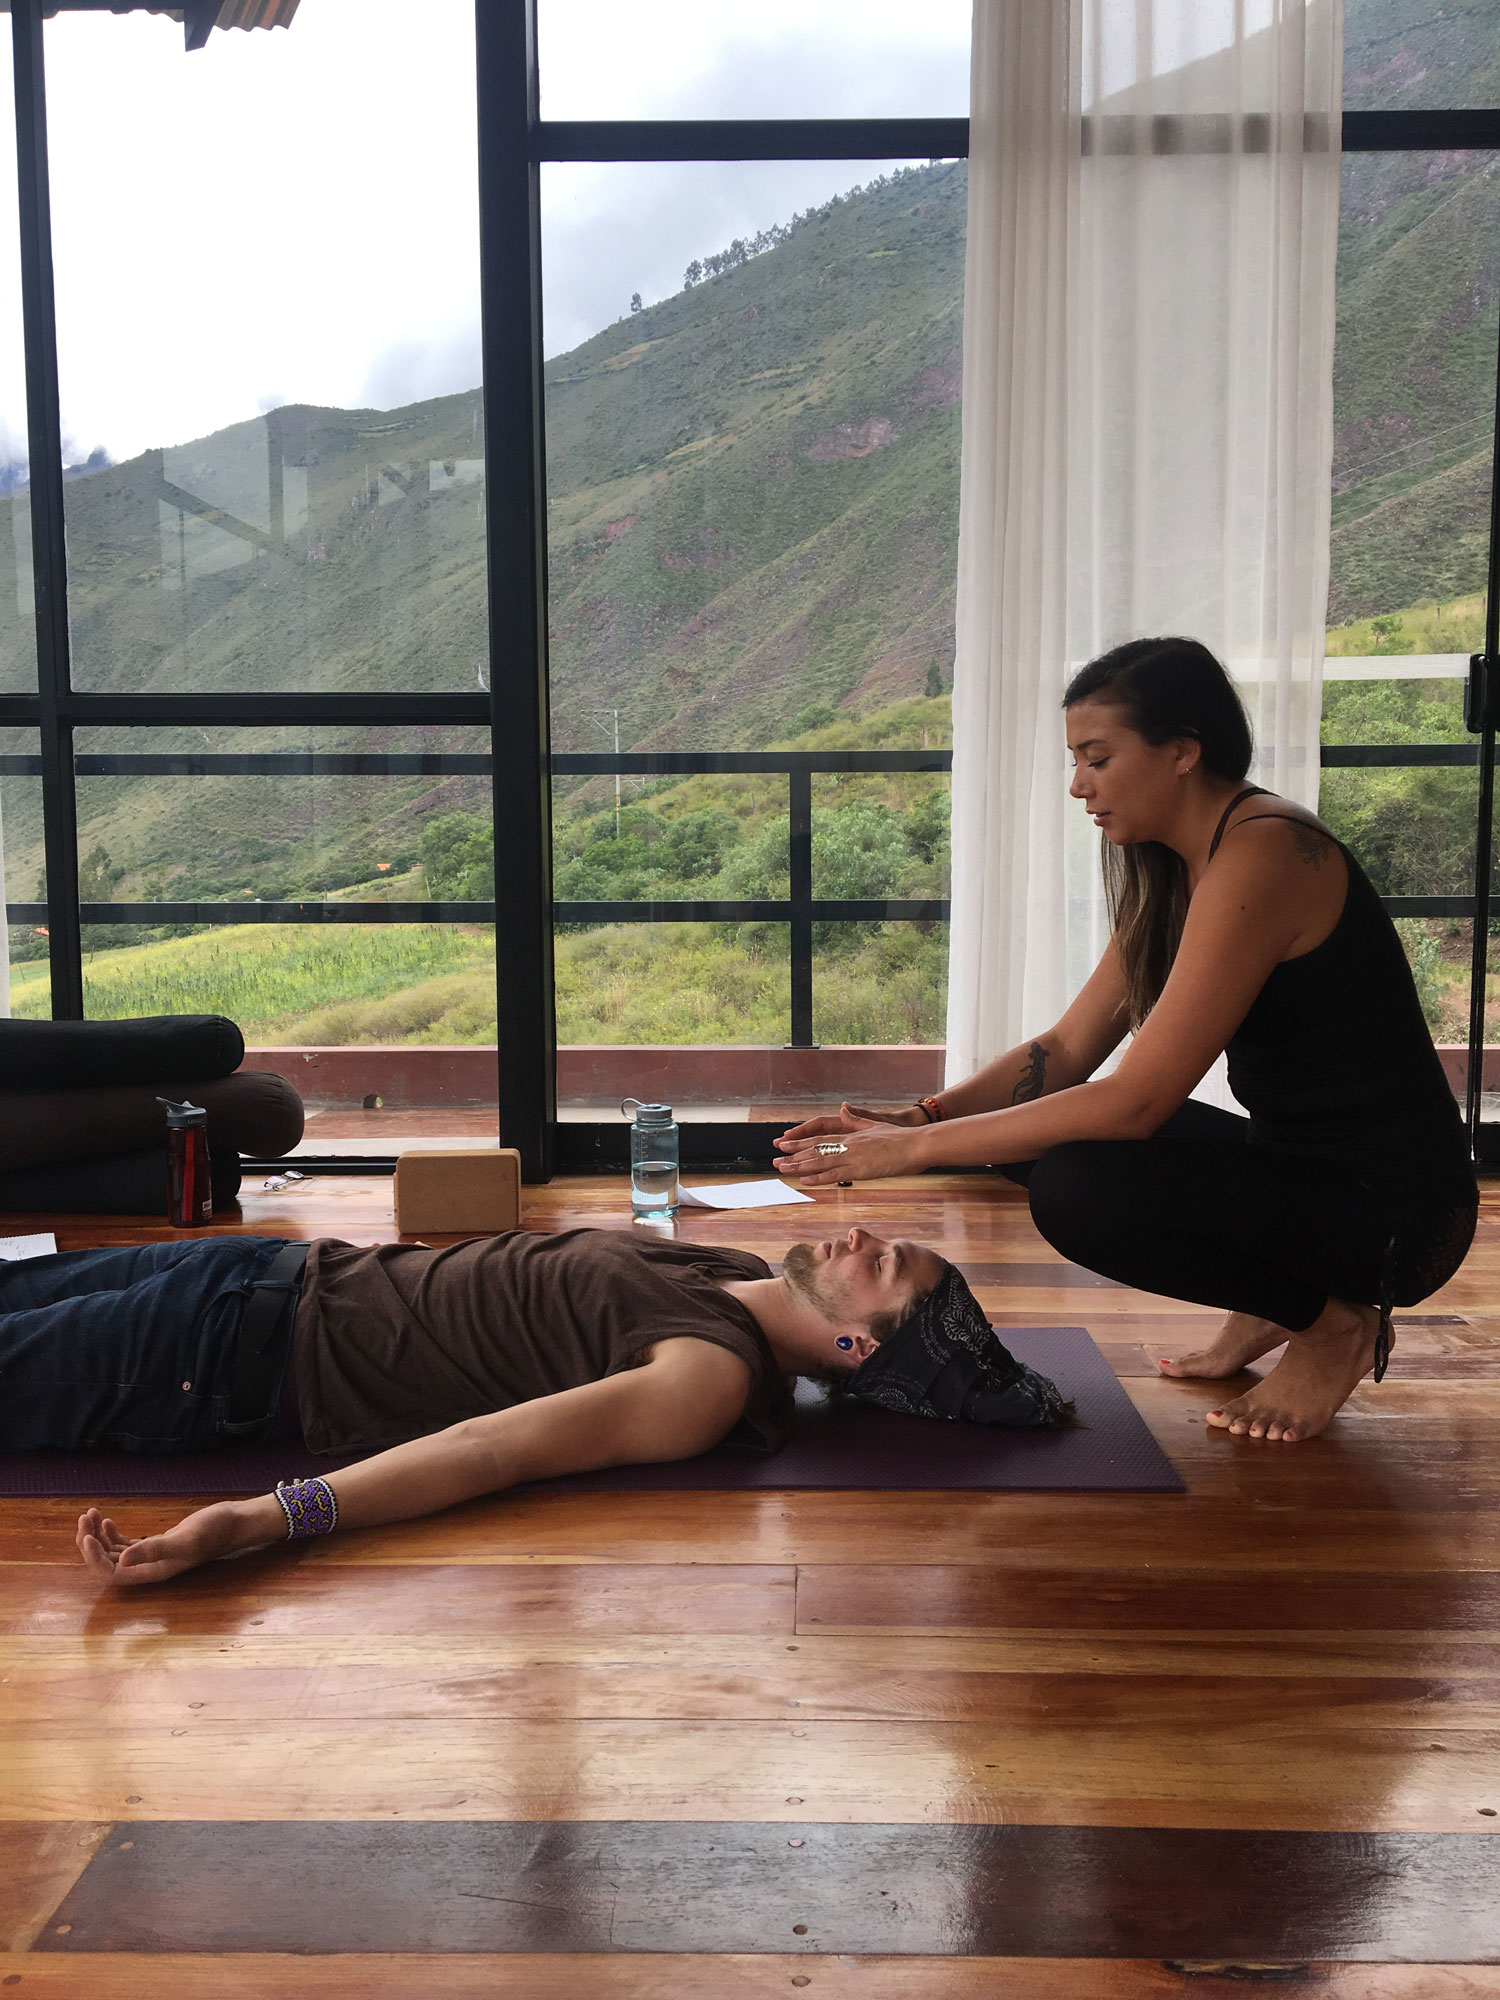 durga-excursions-yin-yoga-teacher-training-3.jpg